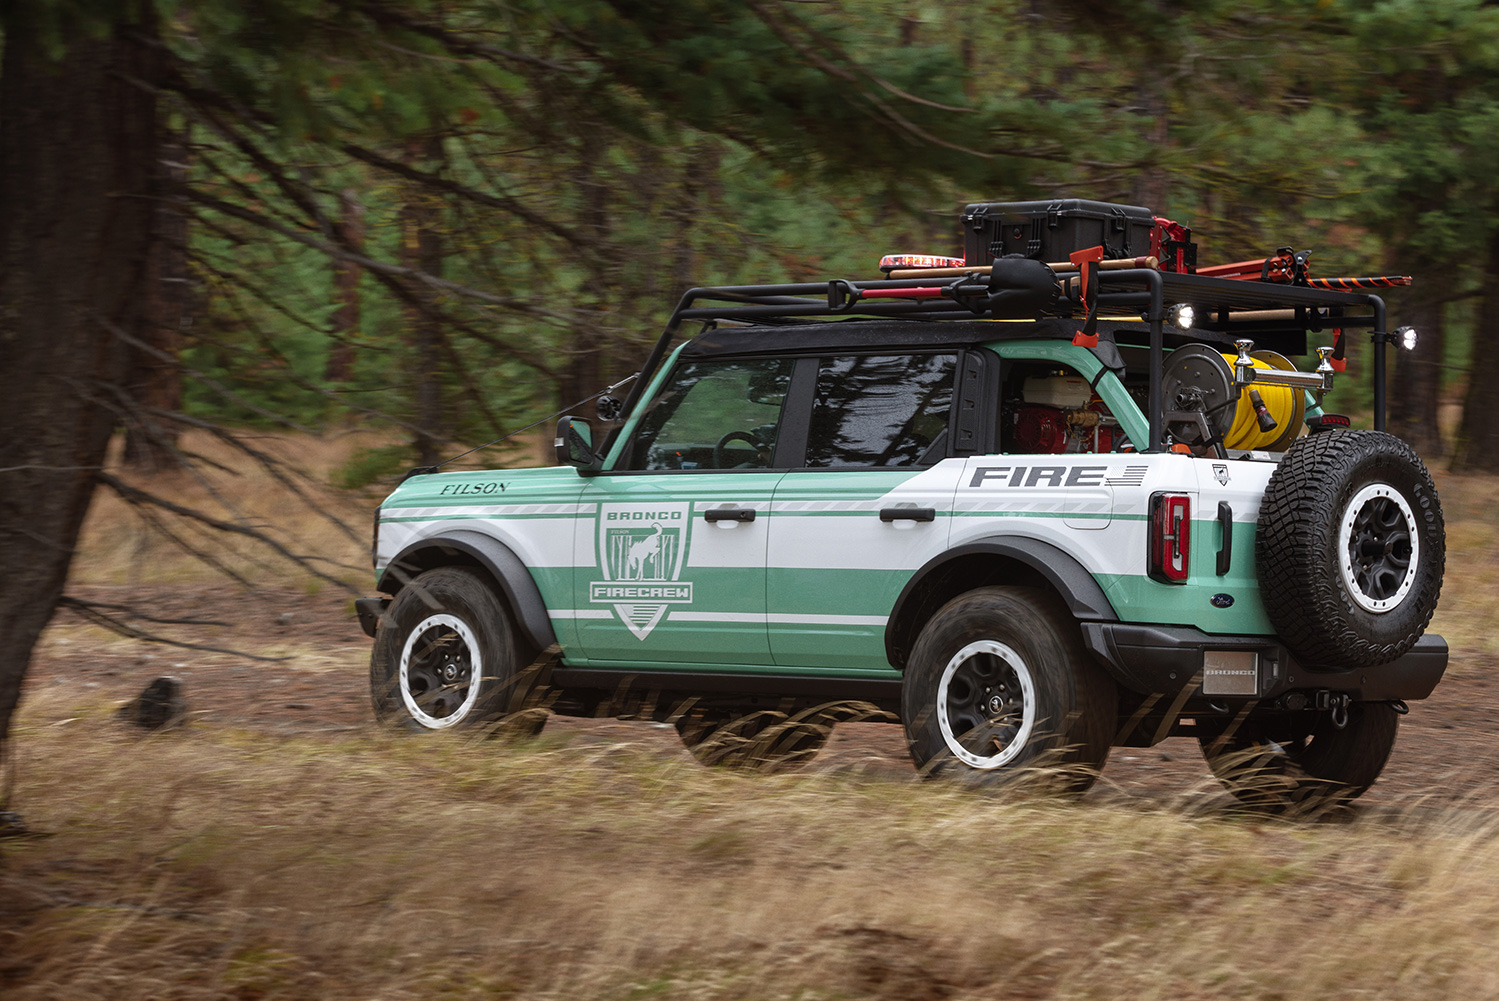 Bronco + Filson Wildland Fire Rig Concept: National Forest Foundation Responsible Recreation Initiatives